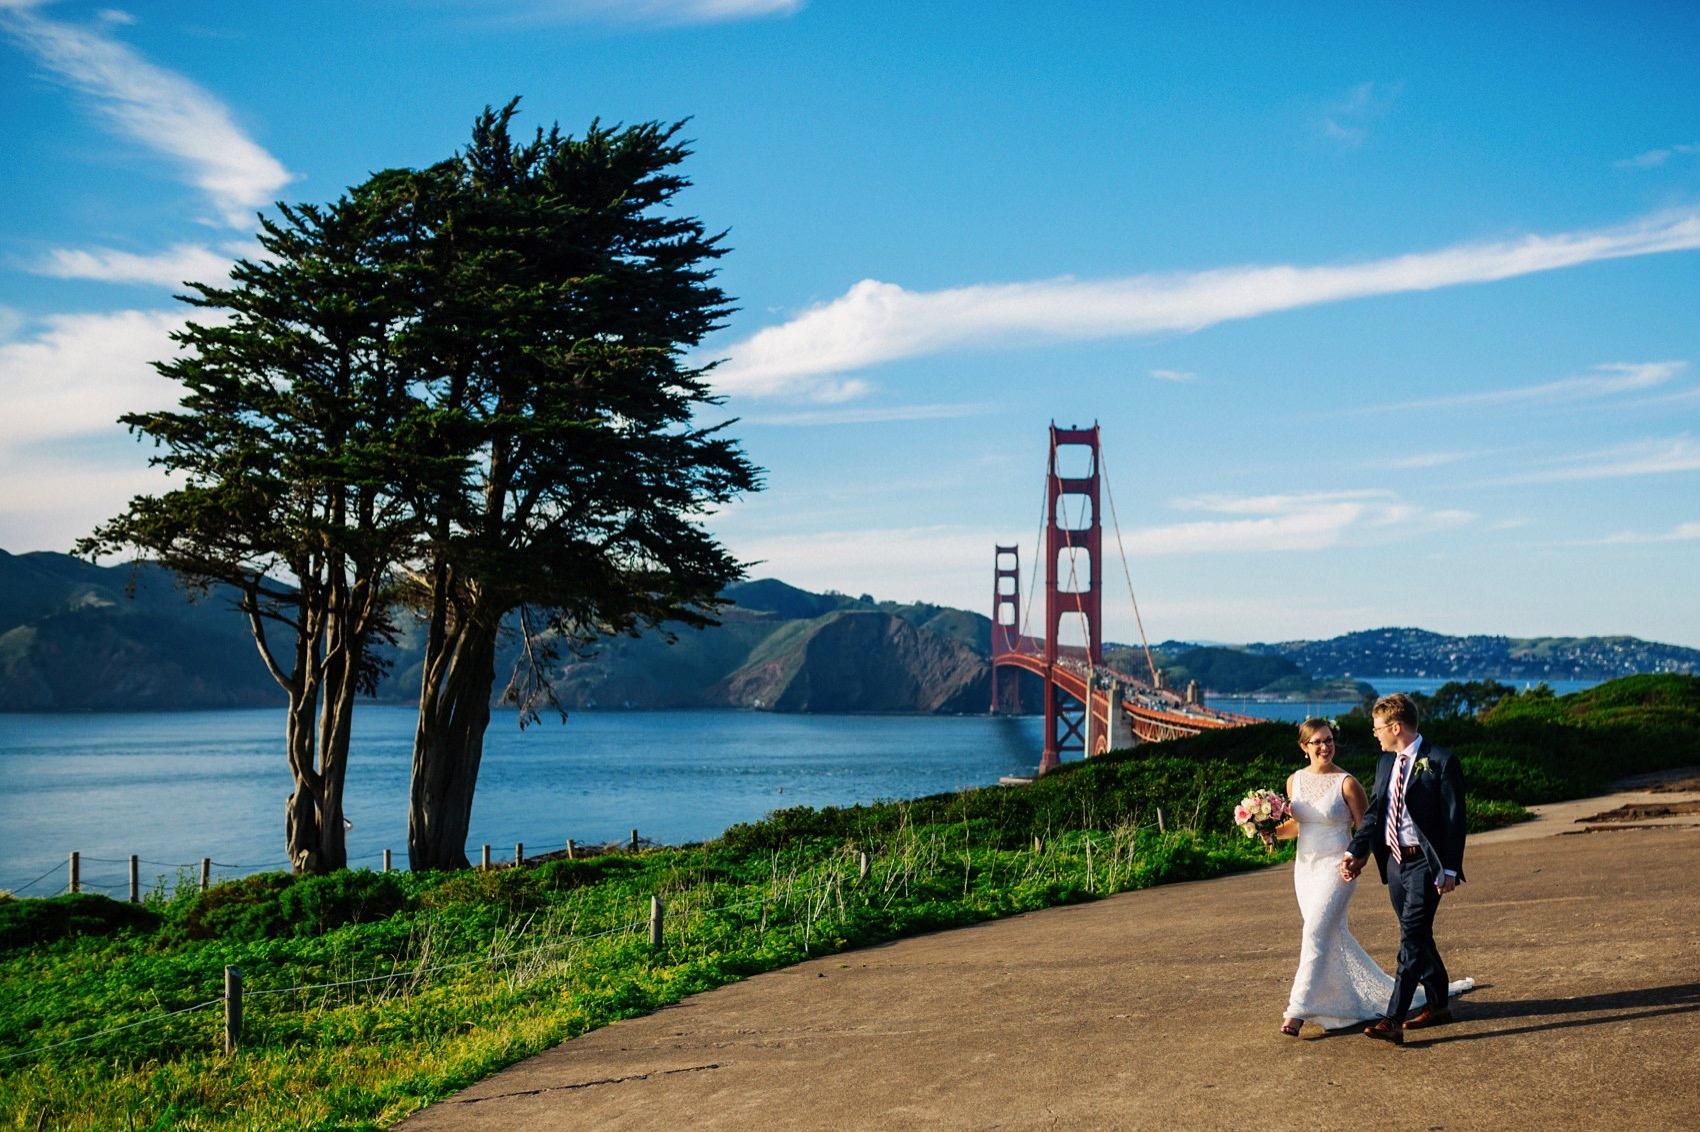 Presidio wedding San Francisco 053 photo